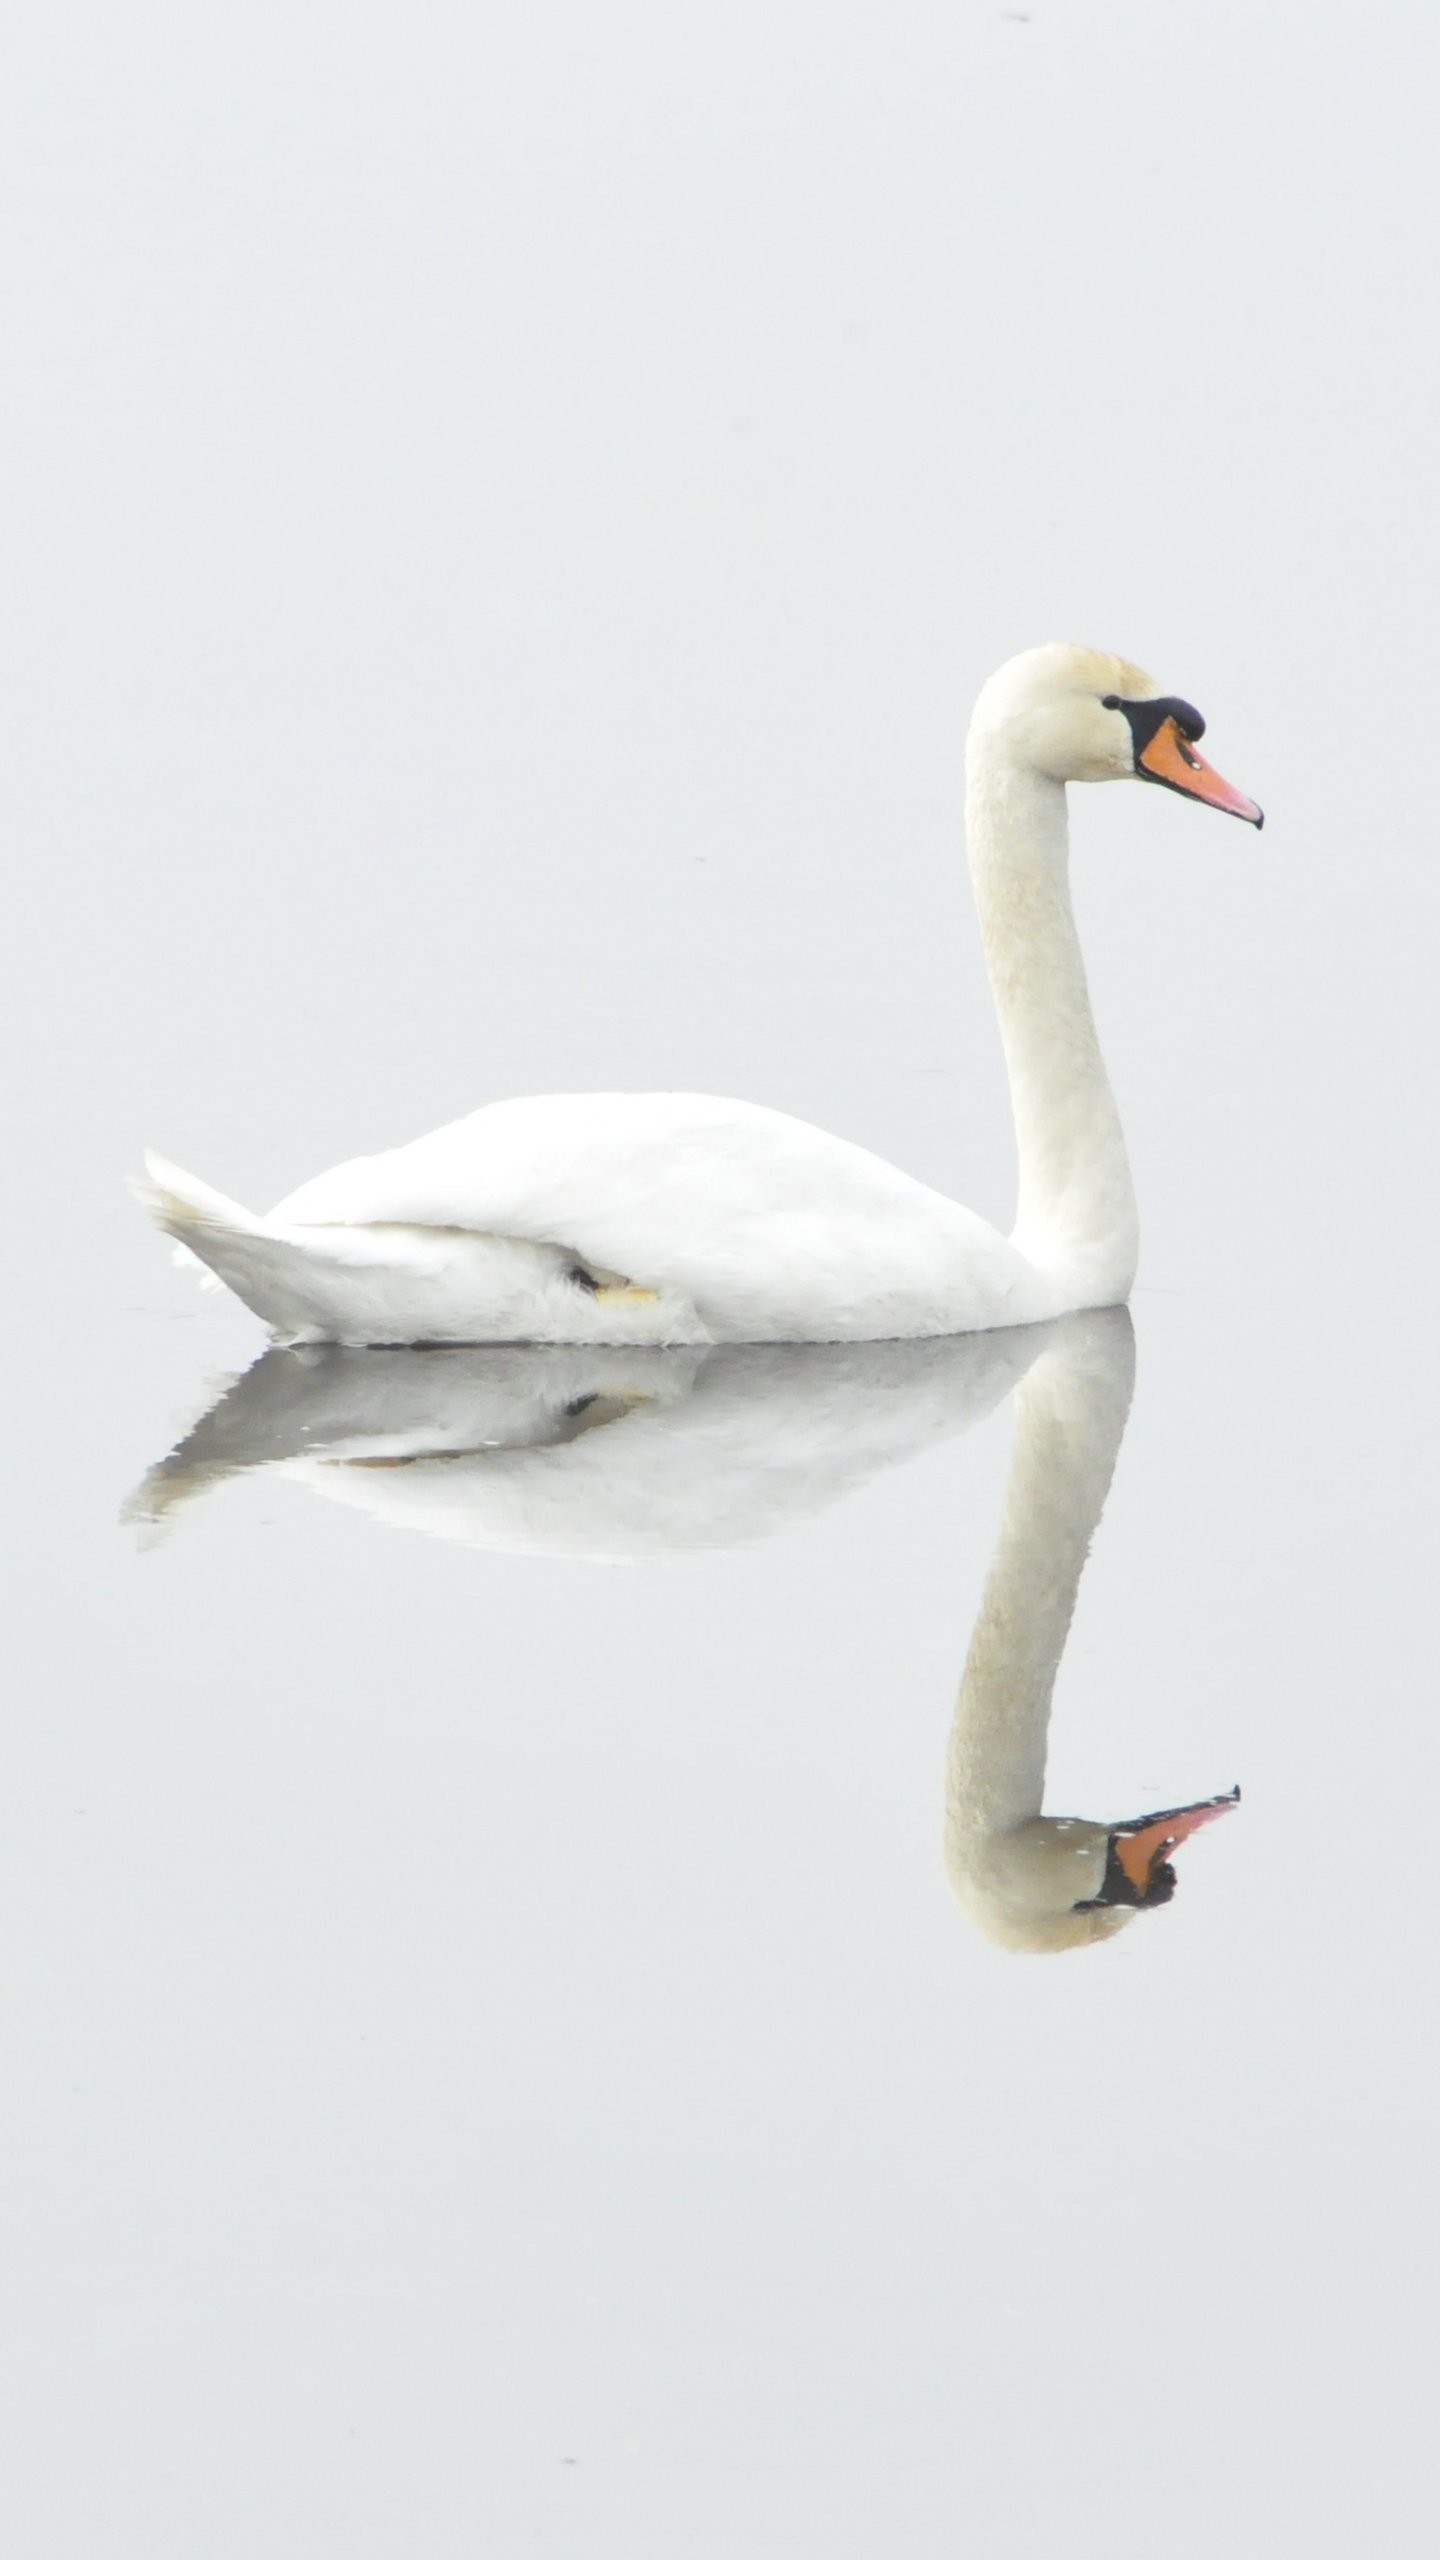 Res: 1440x2560, White Swan on Water